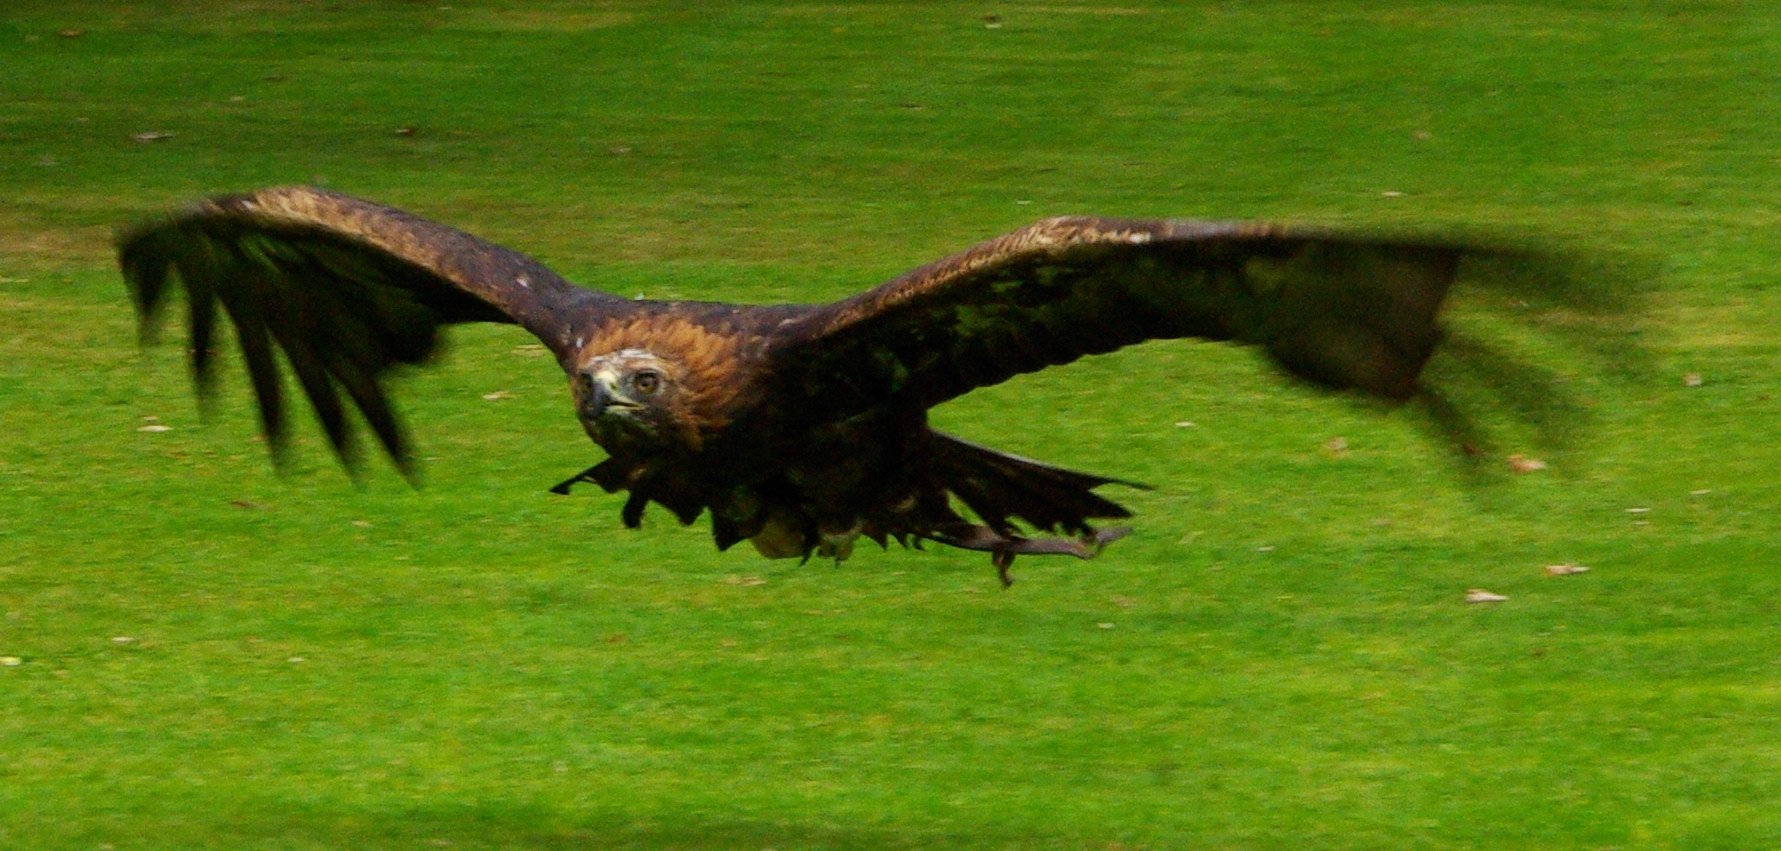 File:Golden eagle in flight.jpg - Wikimedia Commons